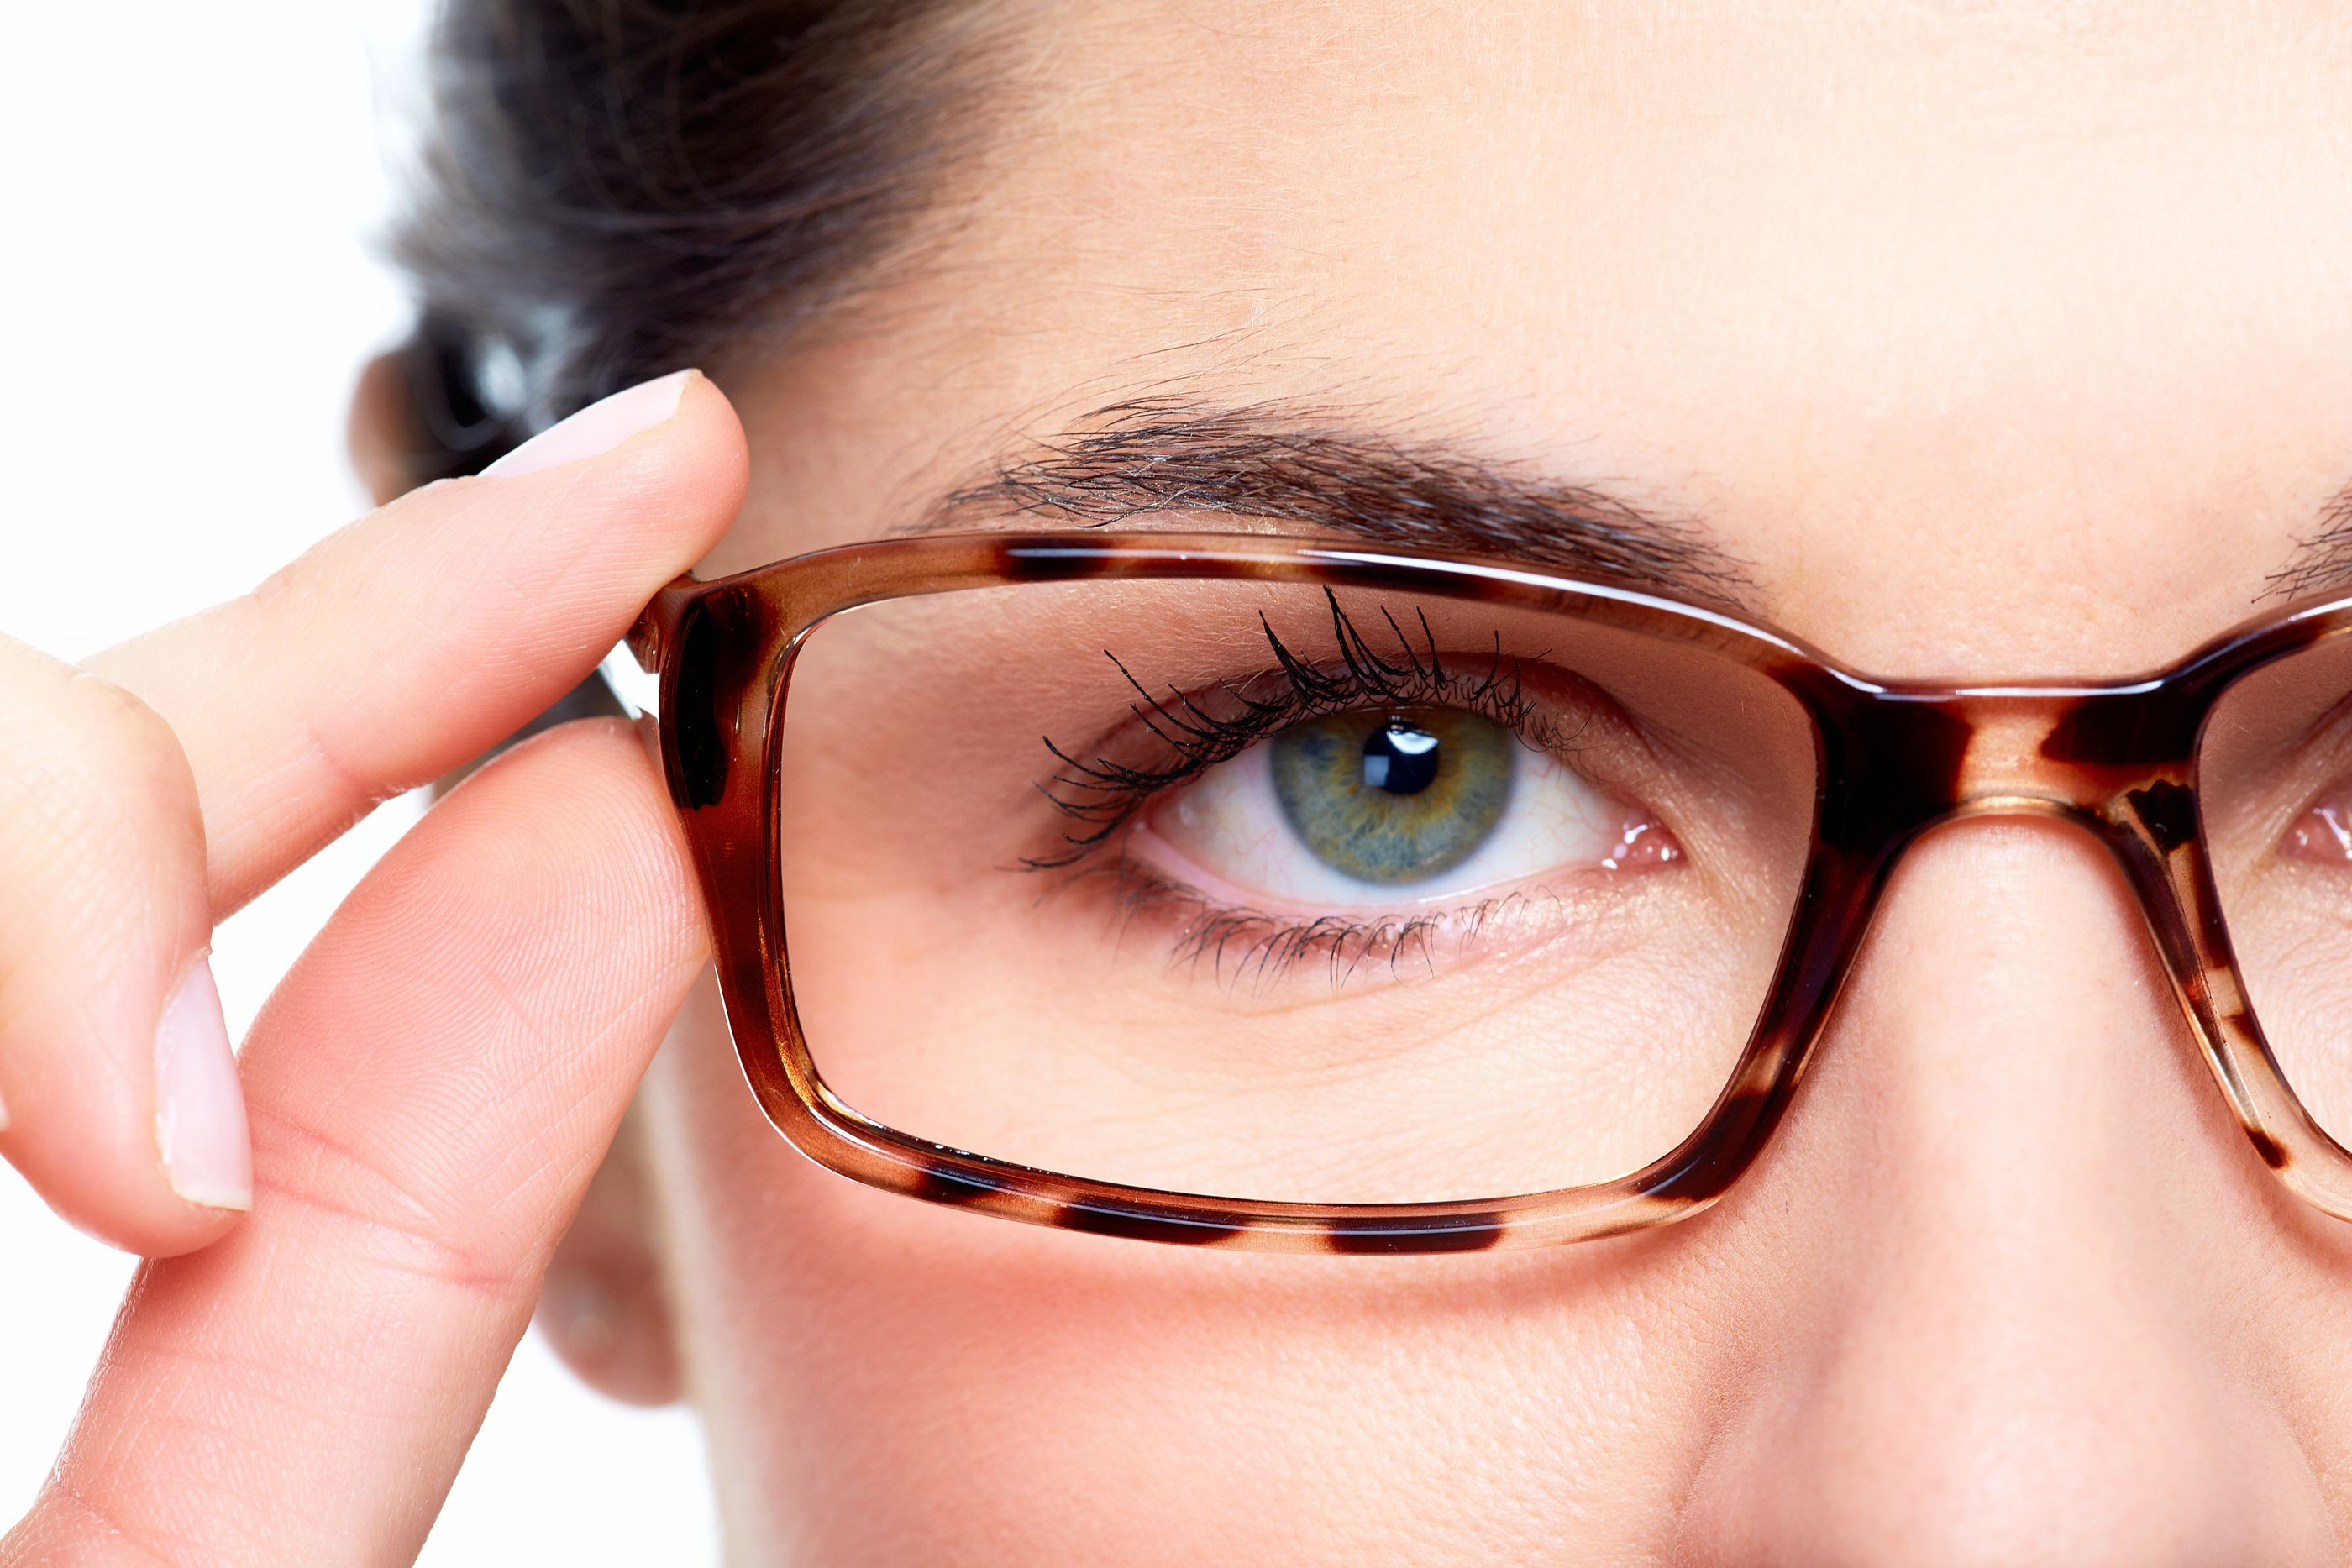 Is Lasik Eye Surgery worth it? Find out from Dr. Stuart